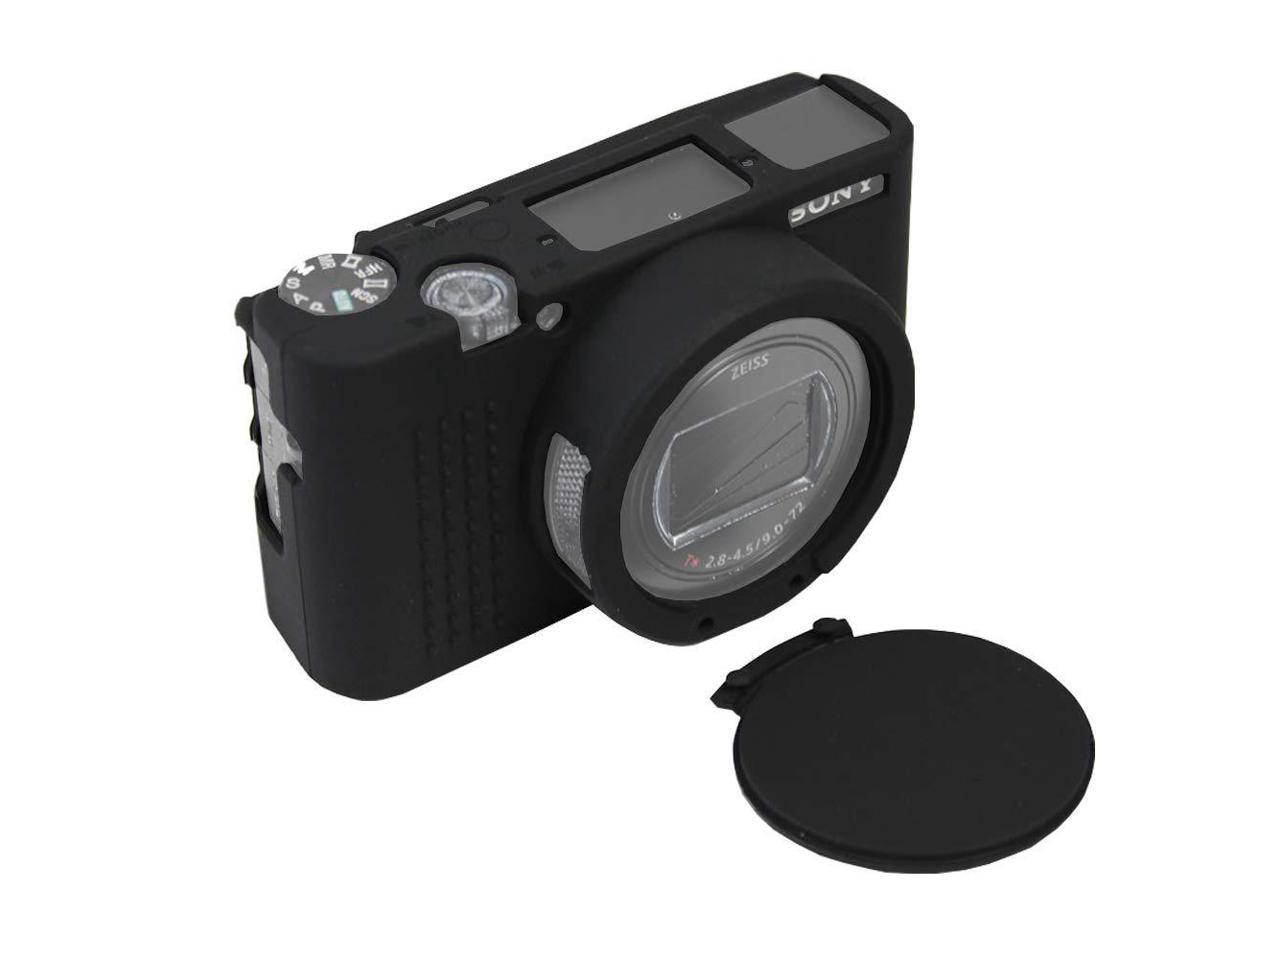 Camera bag for Sony Cyber-shot DSC-WX350 protection storage Case universal black